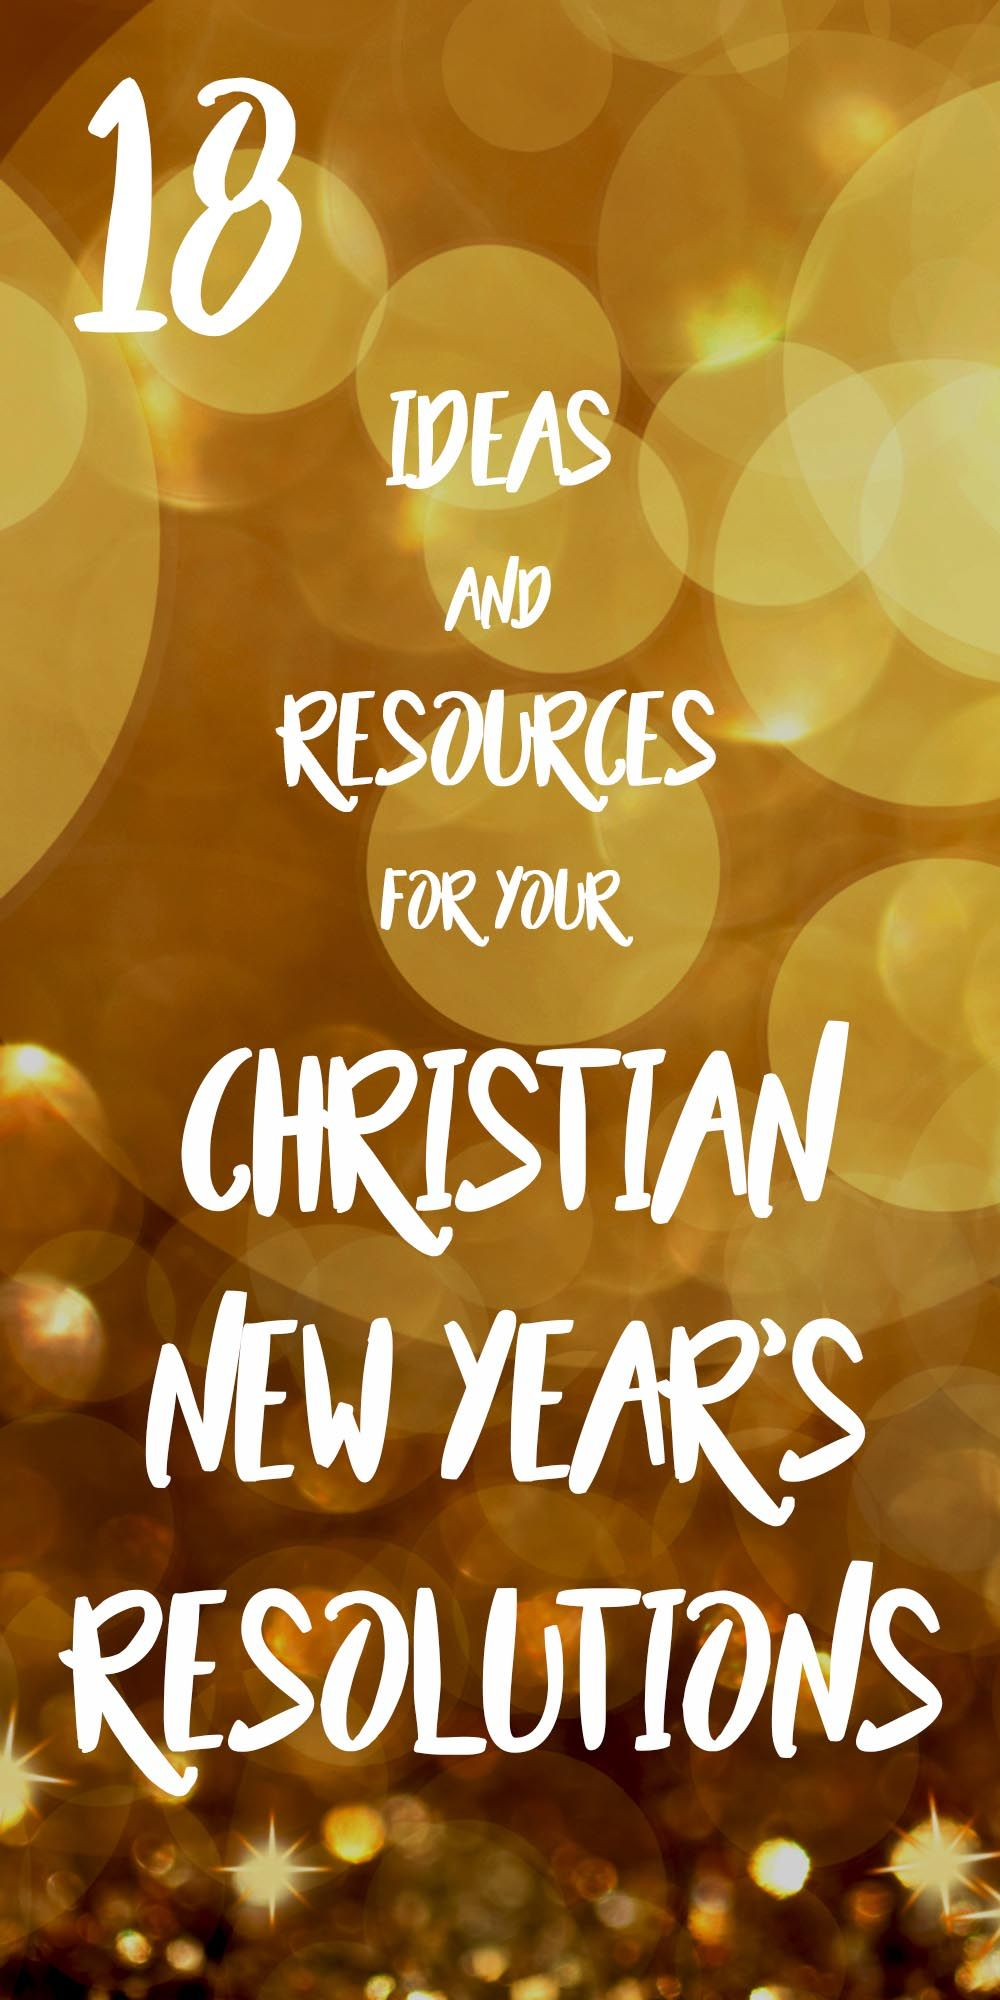 18 Ideas And Resources For Your Christian New Year S Resolutions 2017 Christian Wishlist New Years Resolution How To Stay Healthy Youth Bible Study